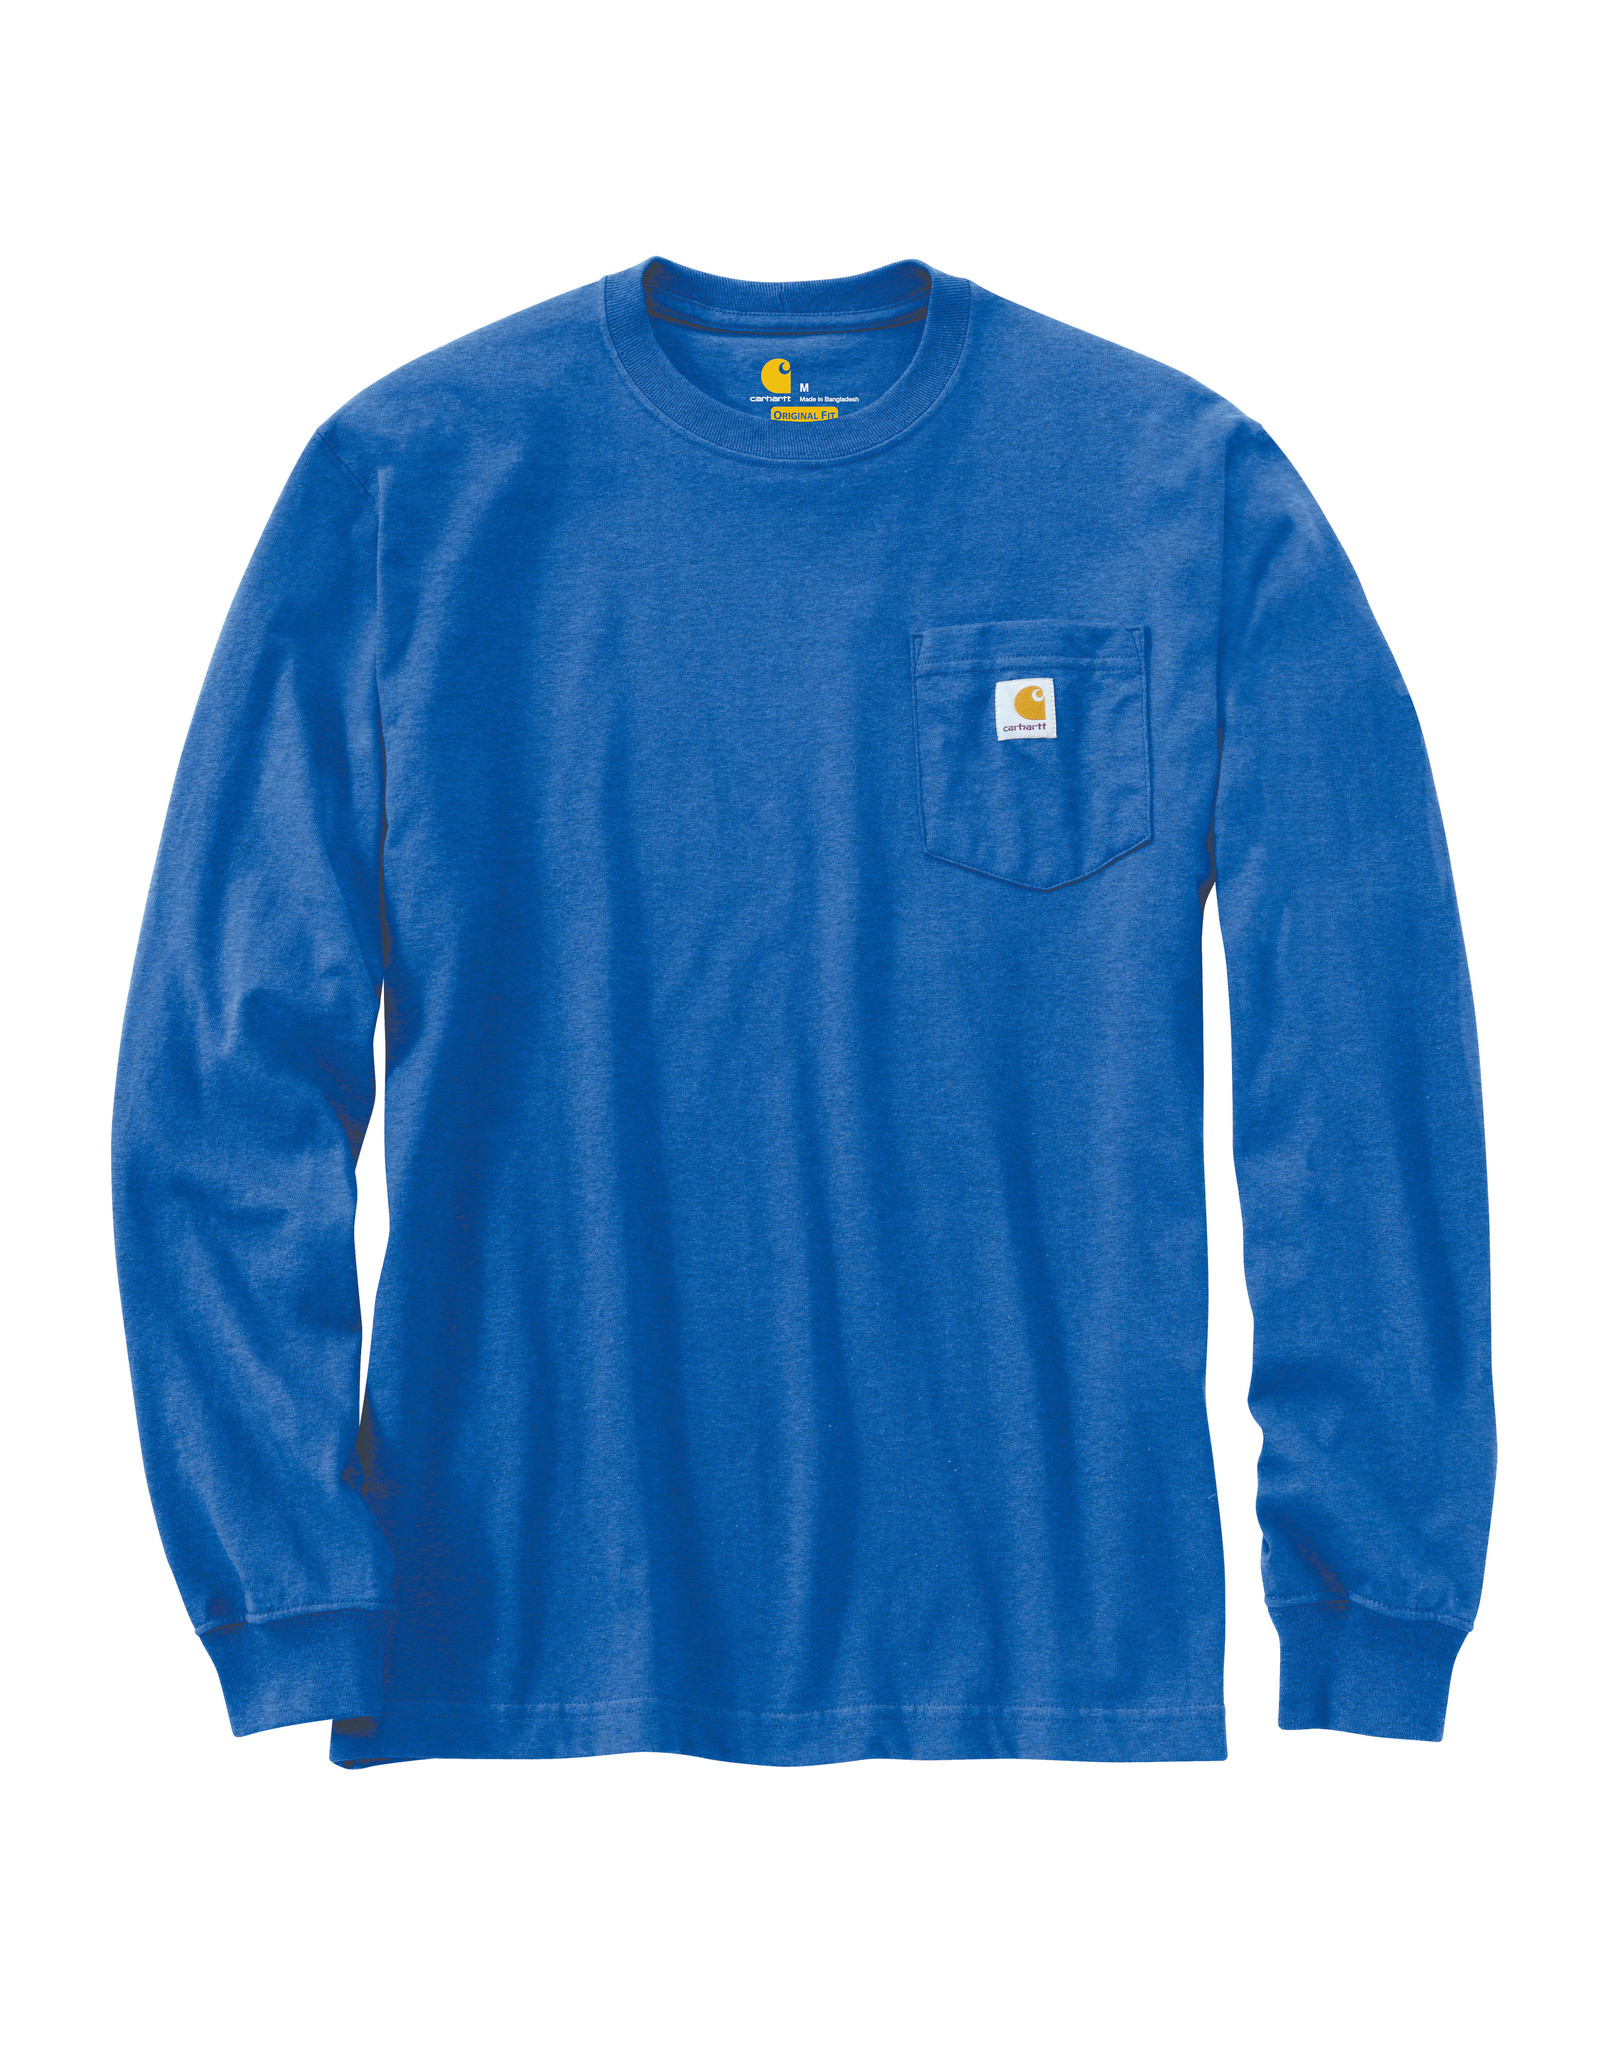 Carhartt Carhartt K126 Workwear Long-Sleeve Shirt with Pocket